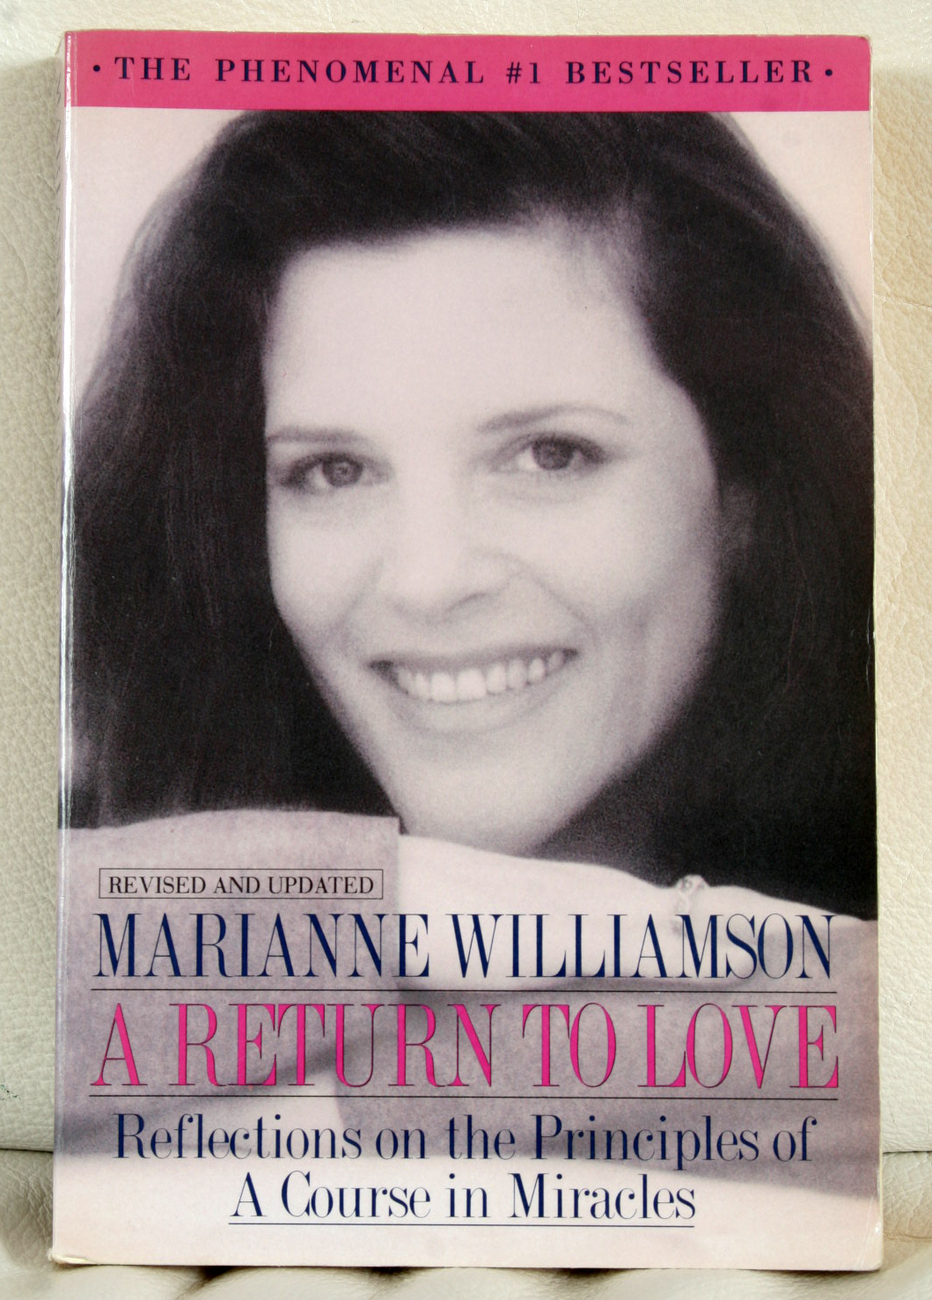 A Return to Love by Marianne Williamson